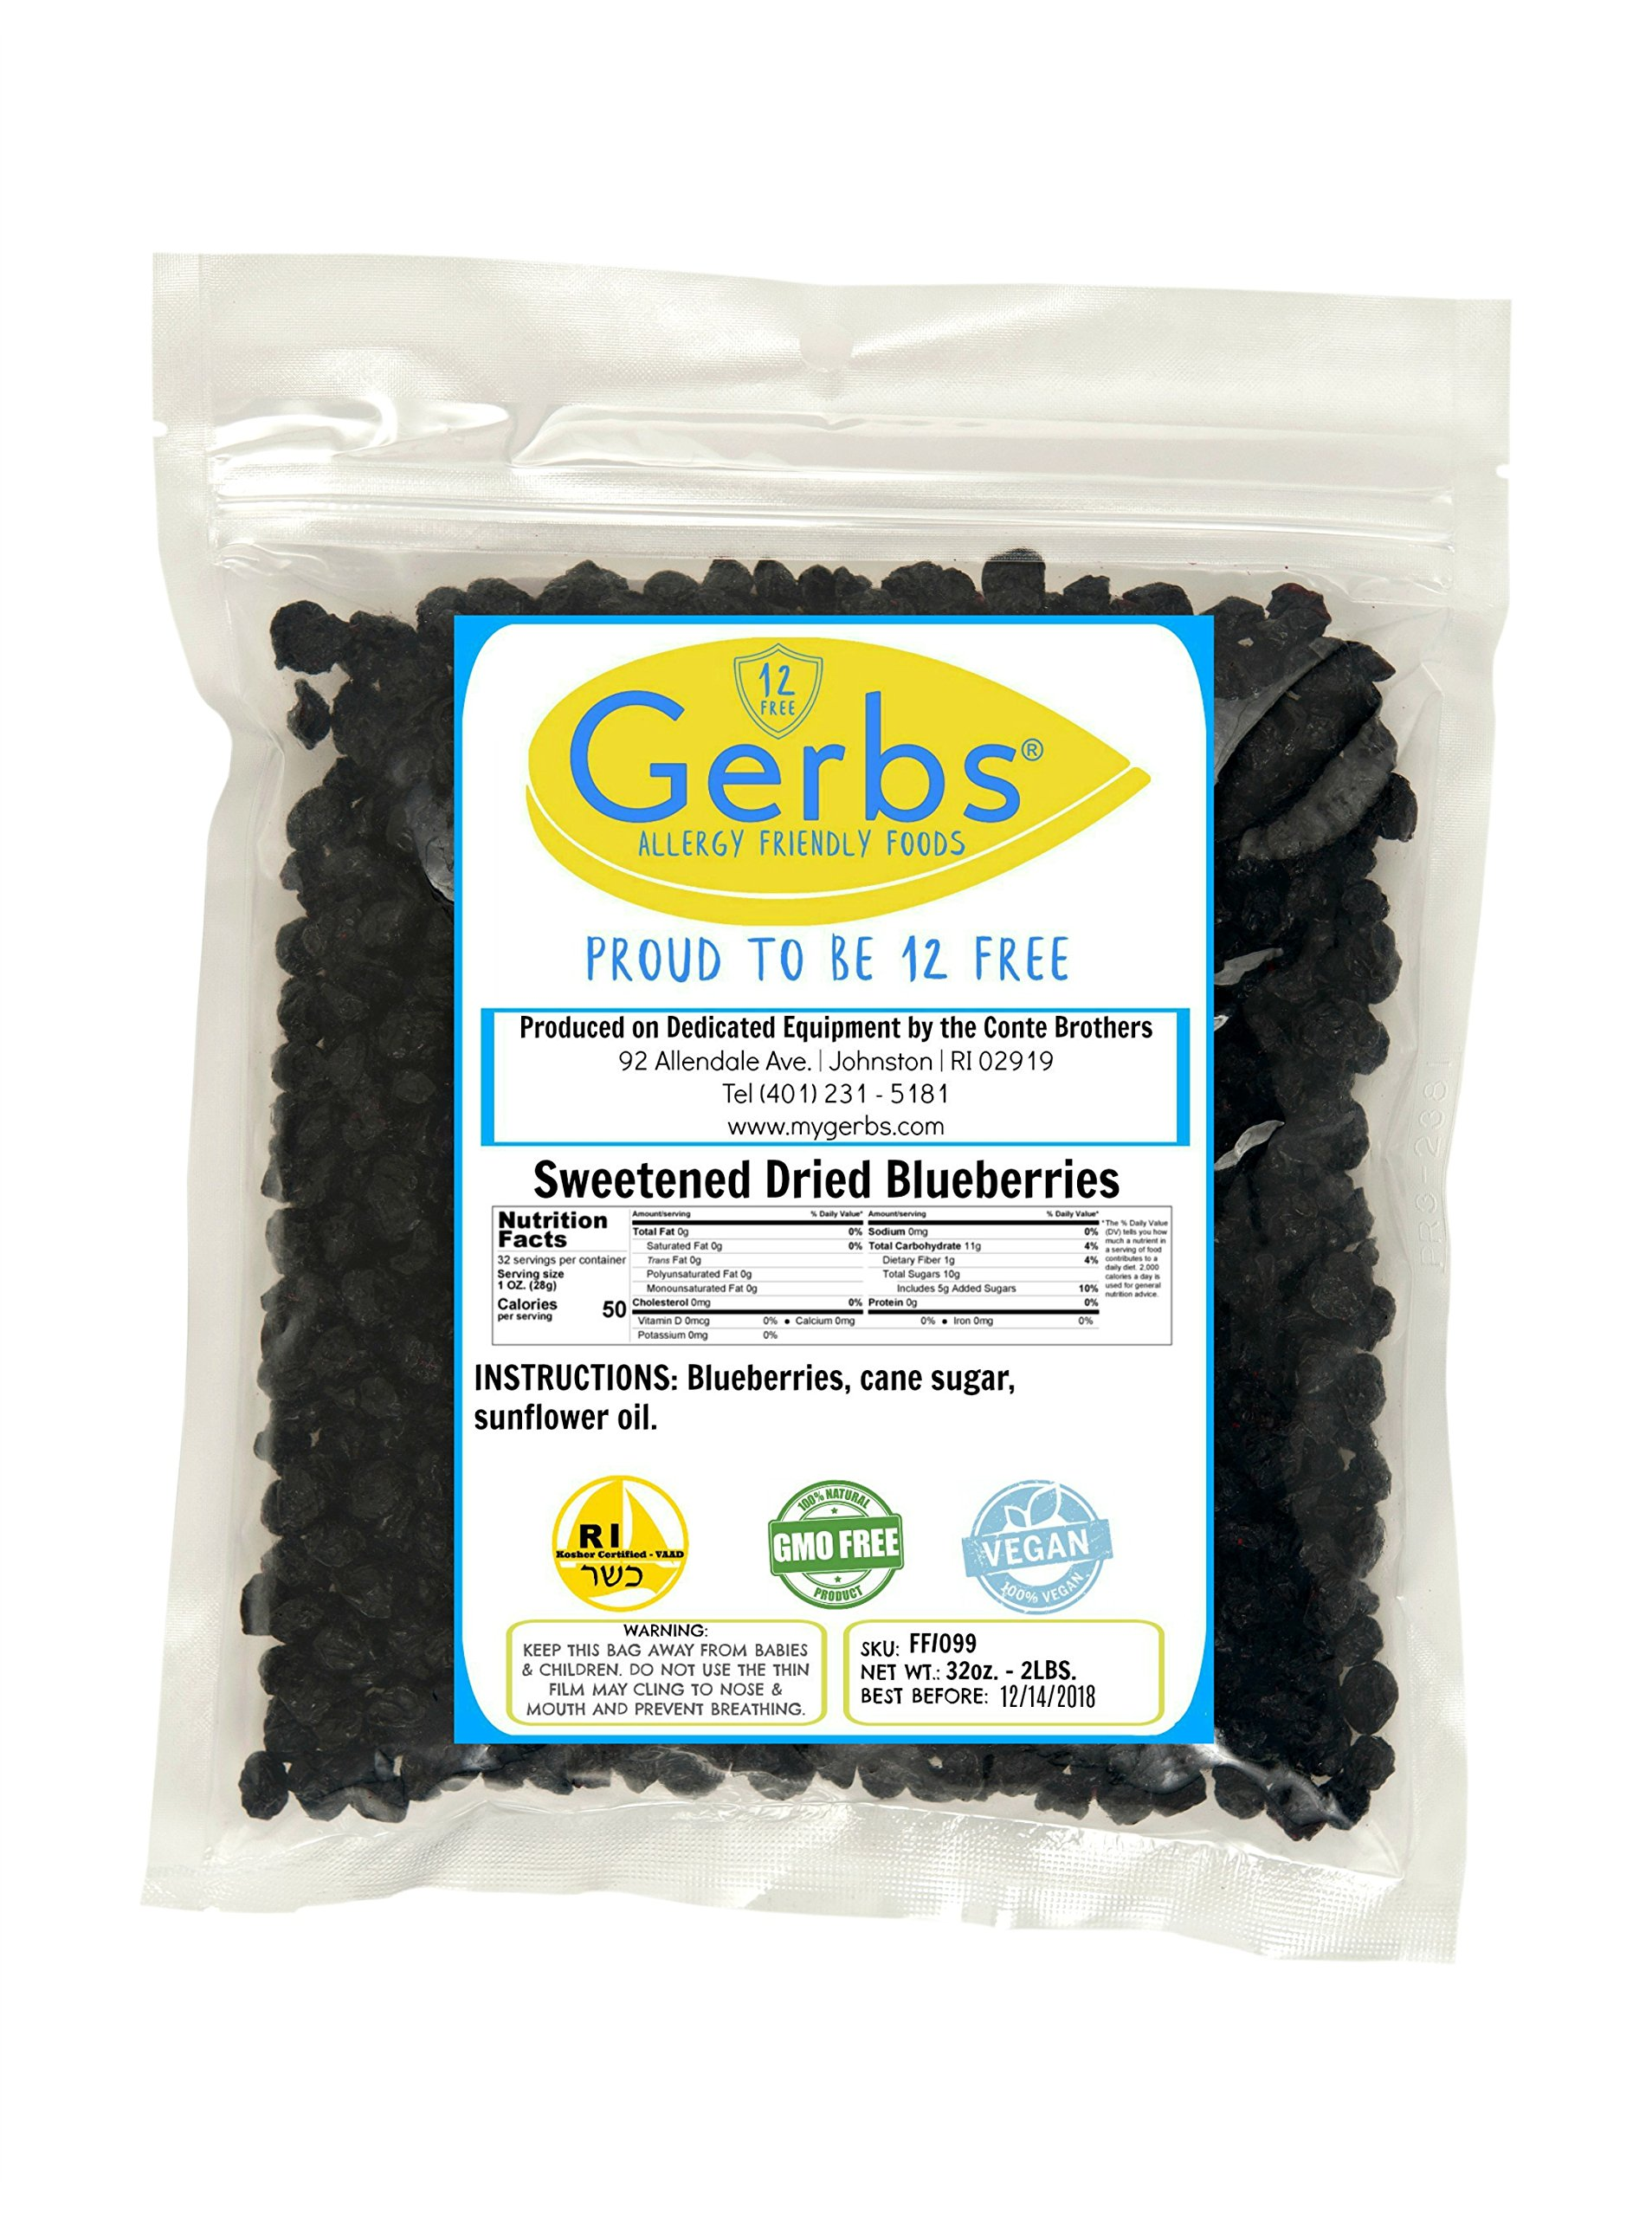 Dried Cape Cod Blueberries, 2 LBS Sweetened - Unsulfured & Preservative Free - Top 12 Food Allergy Free & NON GMO - Product of USA by Gerbs